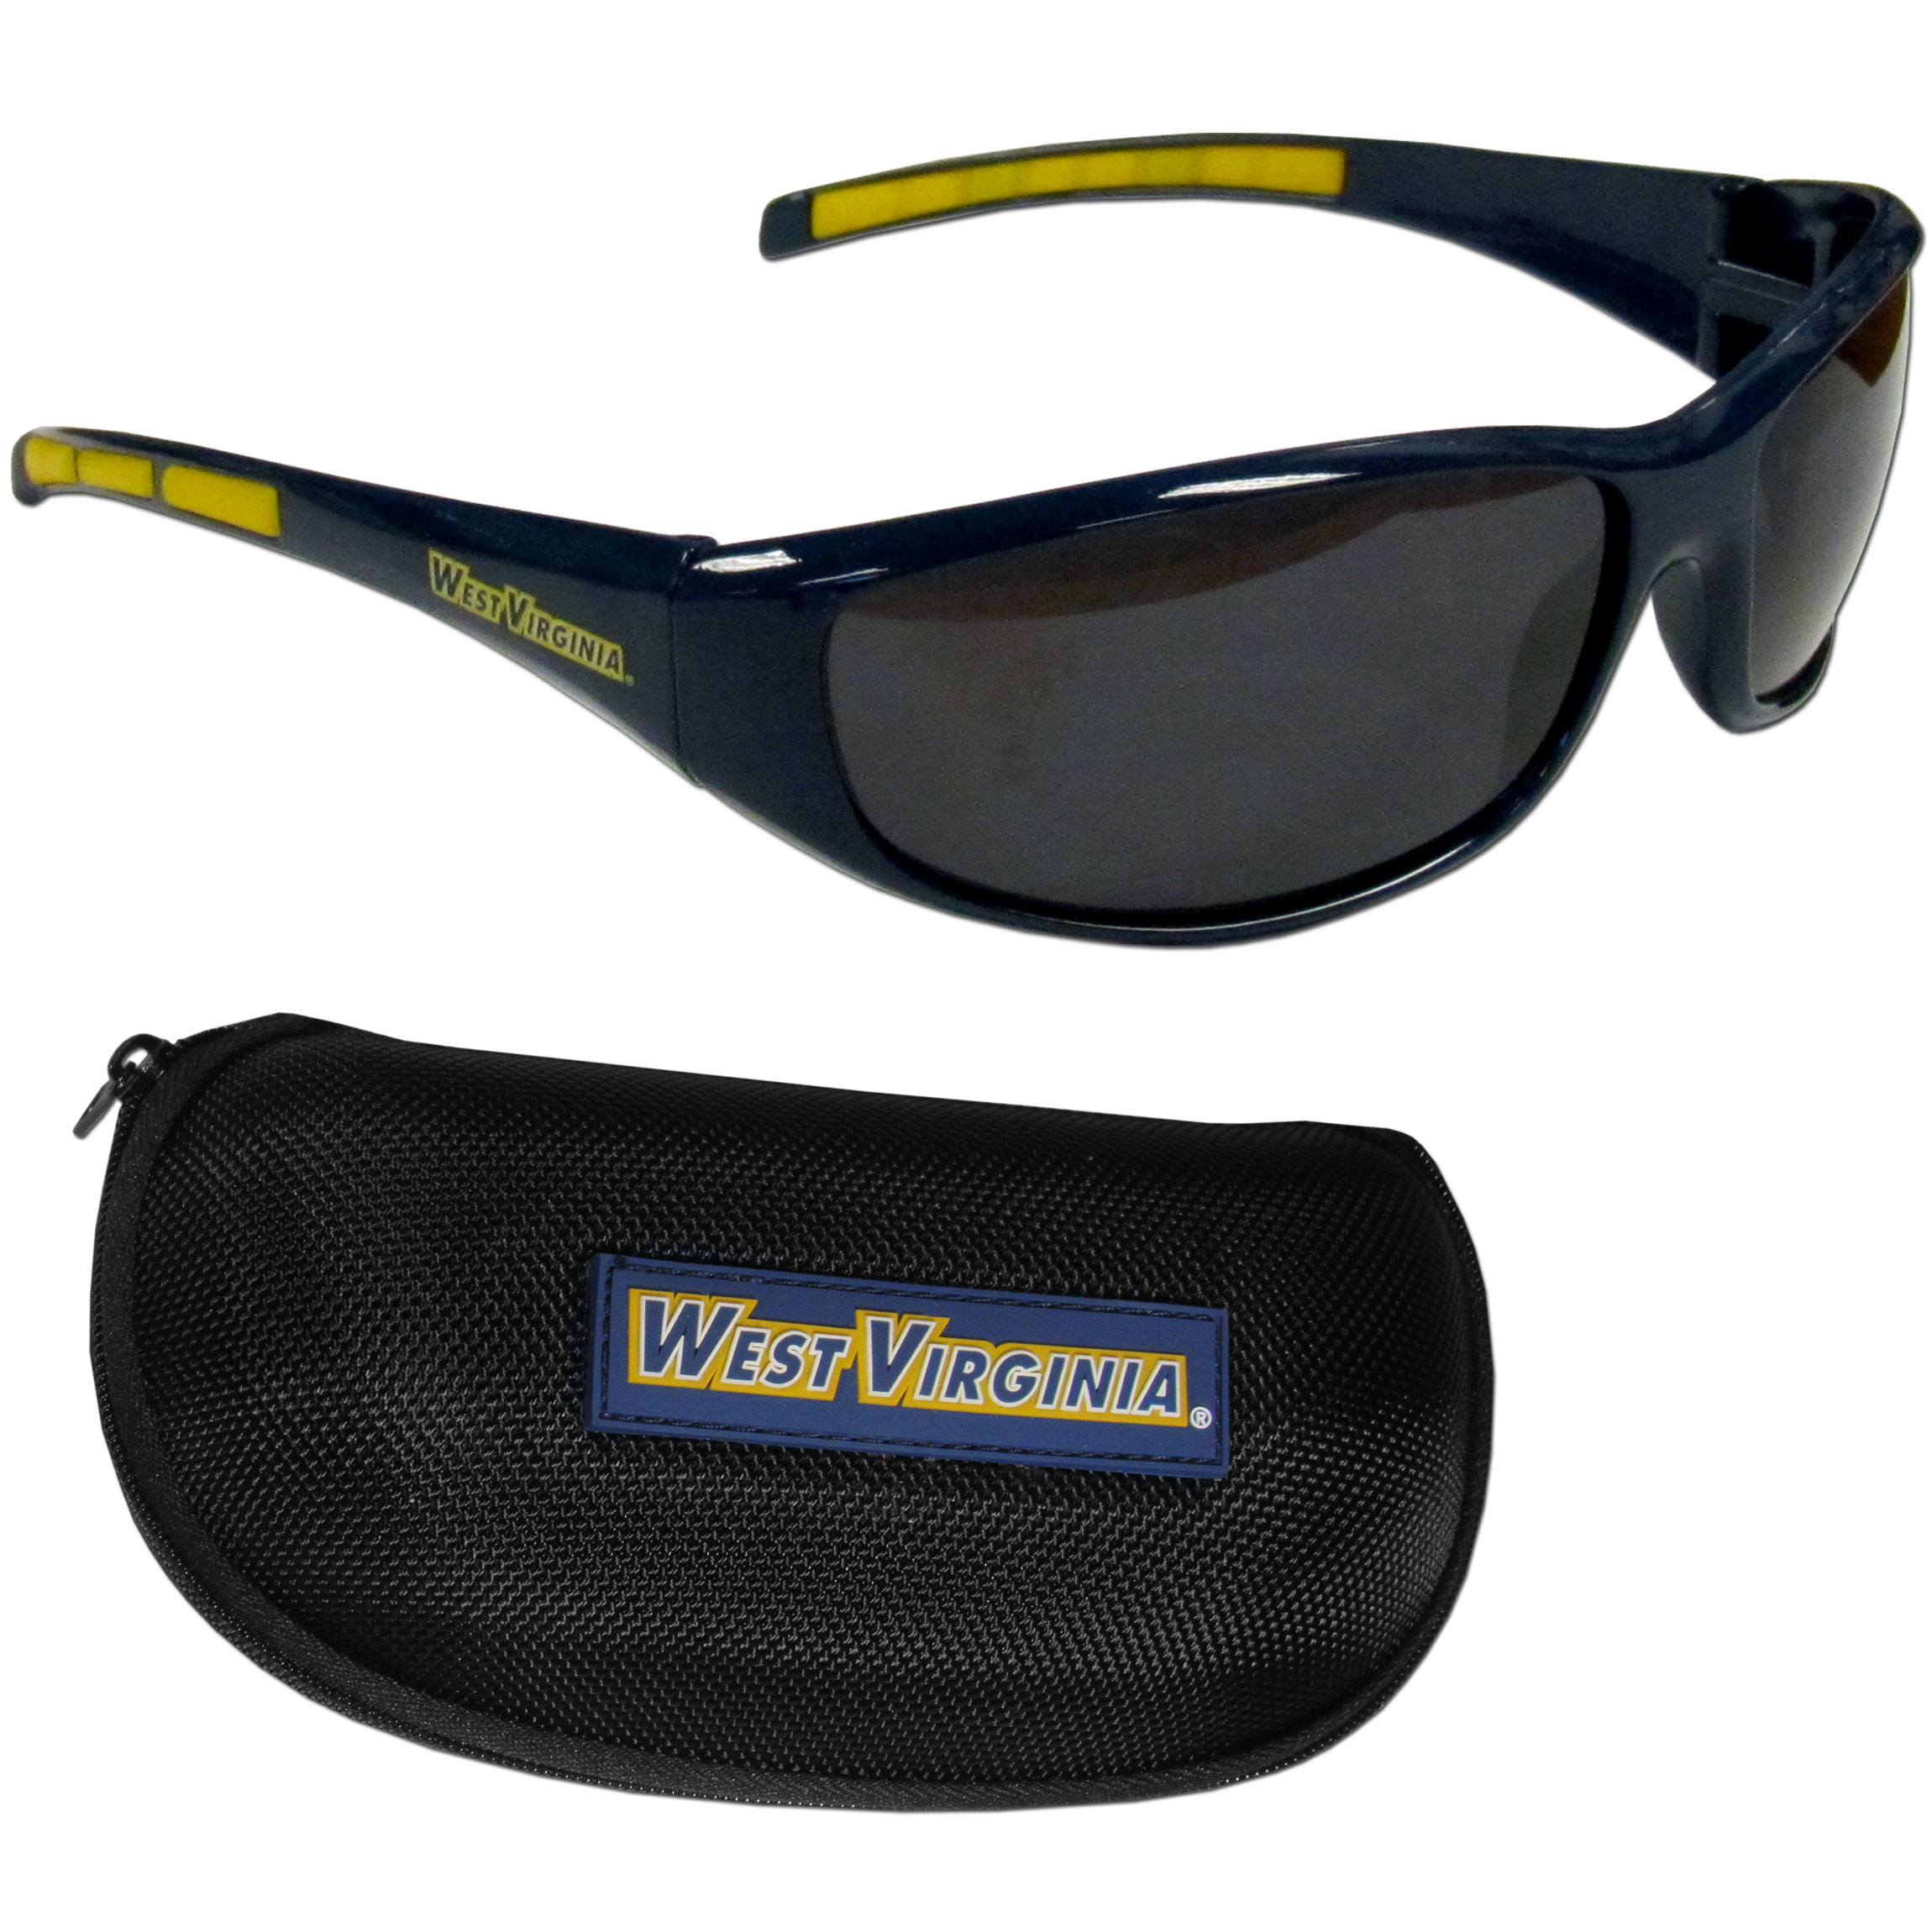 W. Virginia Mountaineers Wrap Sunglass and Case Set - This great set includes a high quality pair of W. Virginia Mountaineers wrap sunglasses and hard carrying case.